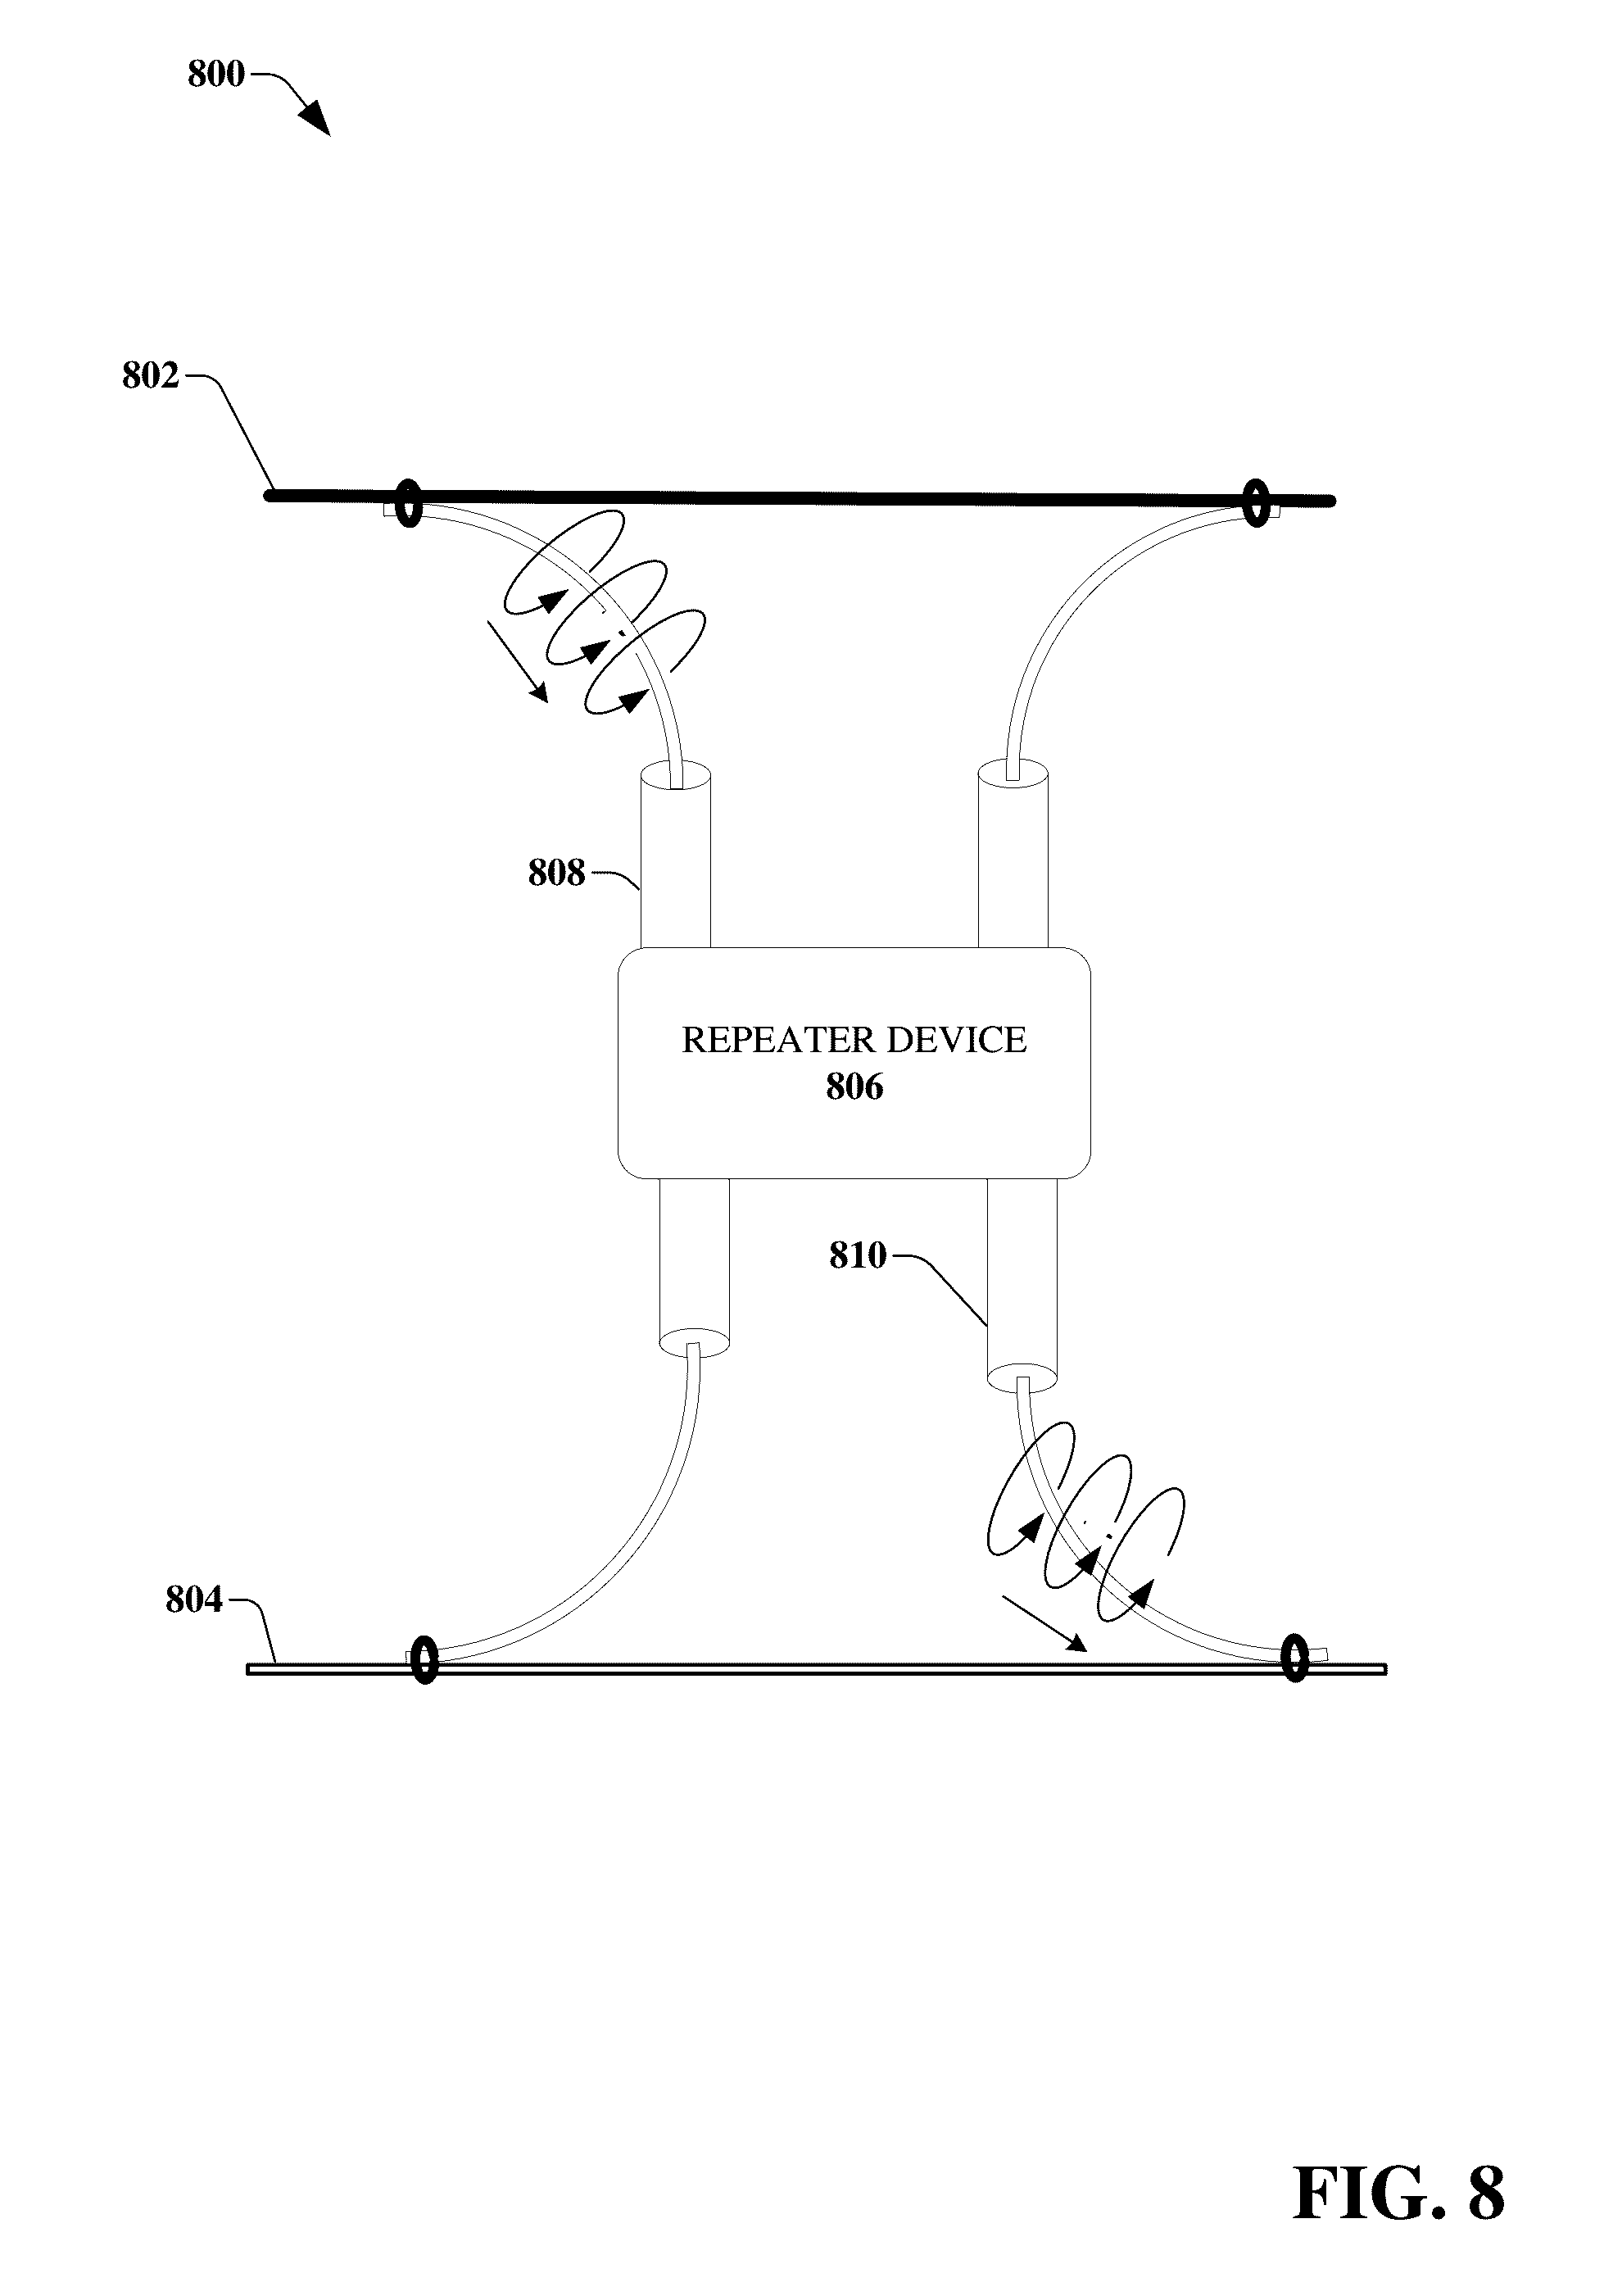 Us9531427b2 Transmission Device With Mode Division Multiplexing 1959 Practical Monolithic Integrated Circuit Concept Patented The And Methods For Use Therewith Google Patents